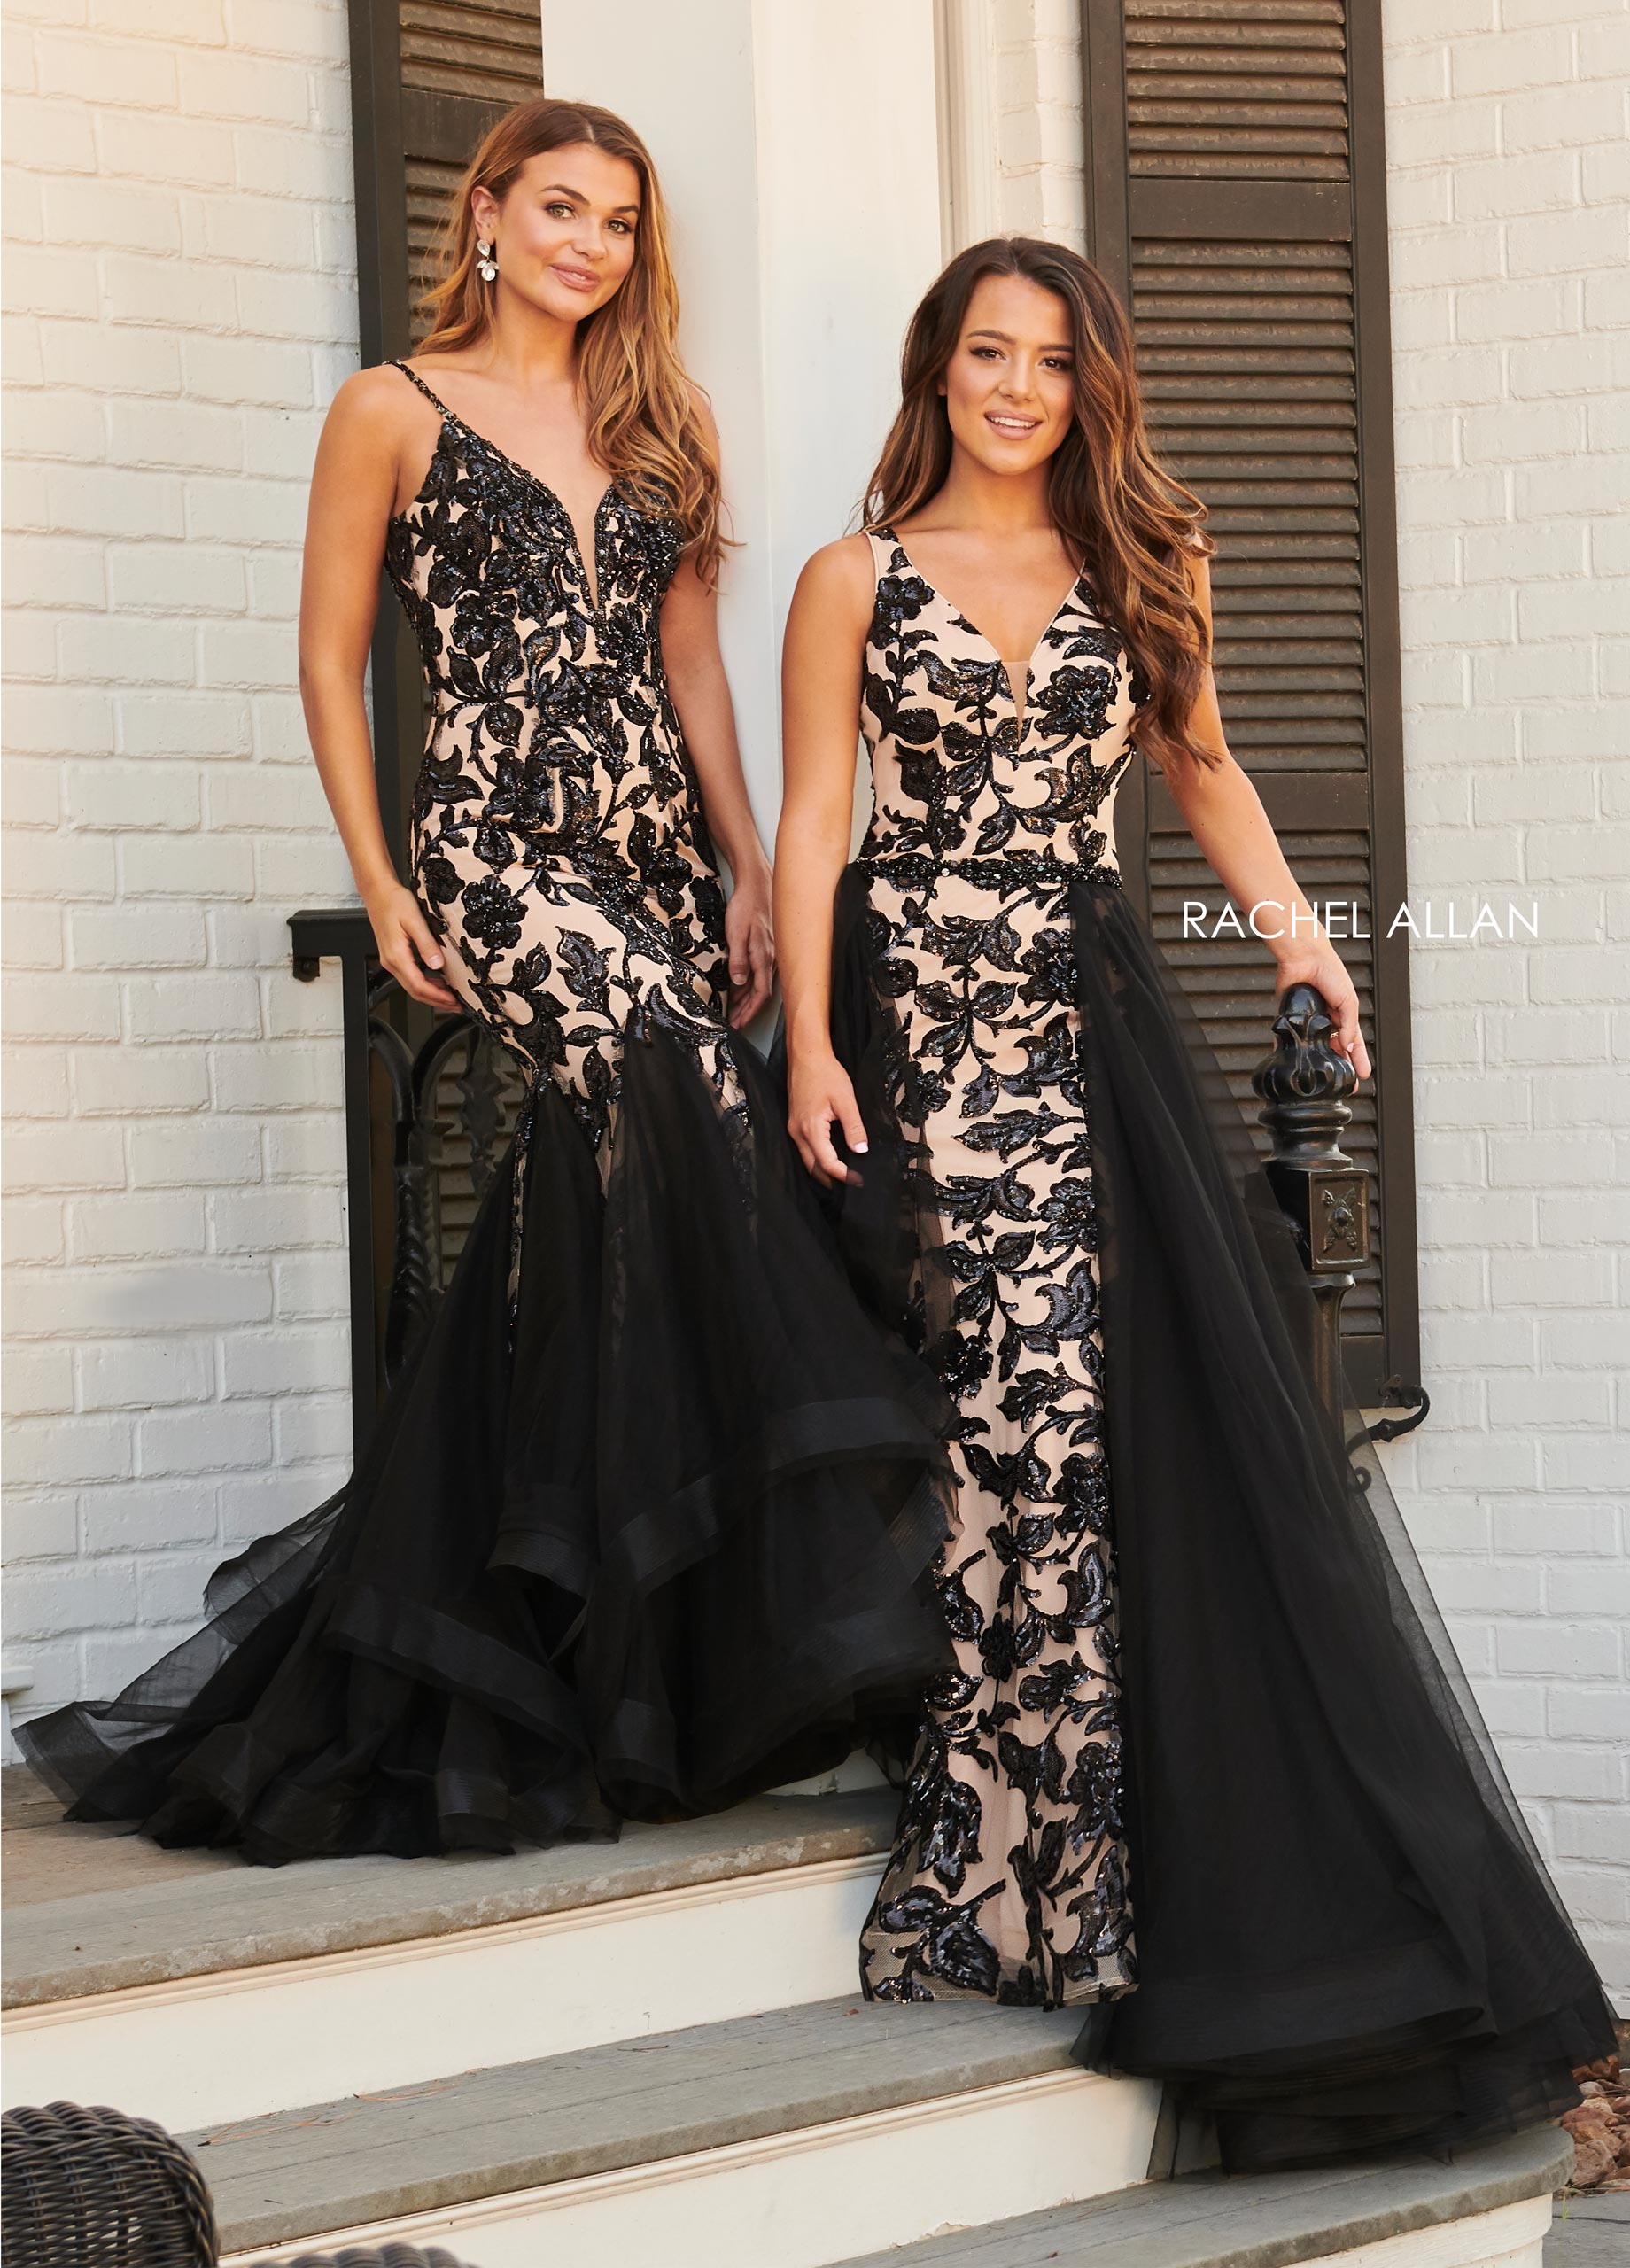 V-Neck Skirt With Overlay Prom Dresses in Black Color